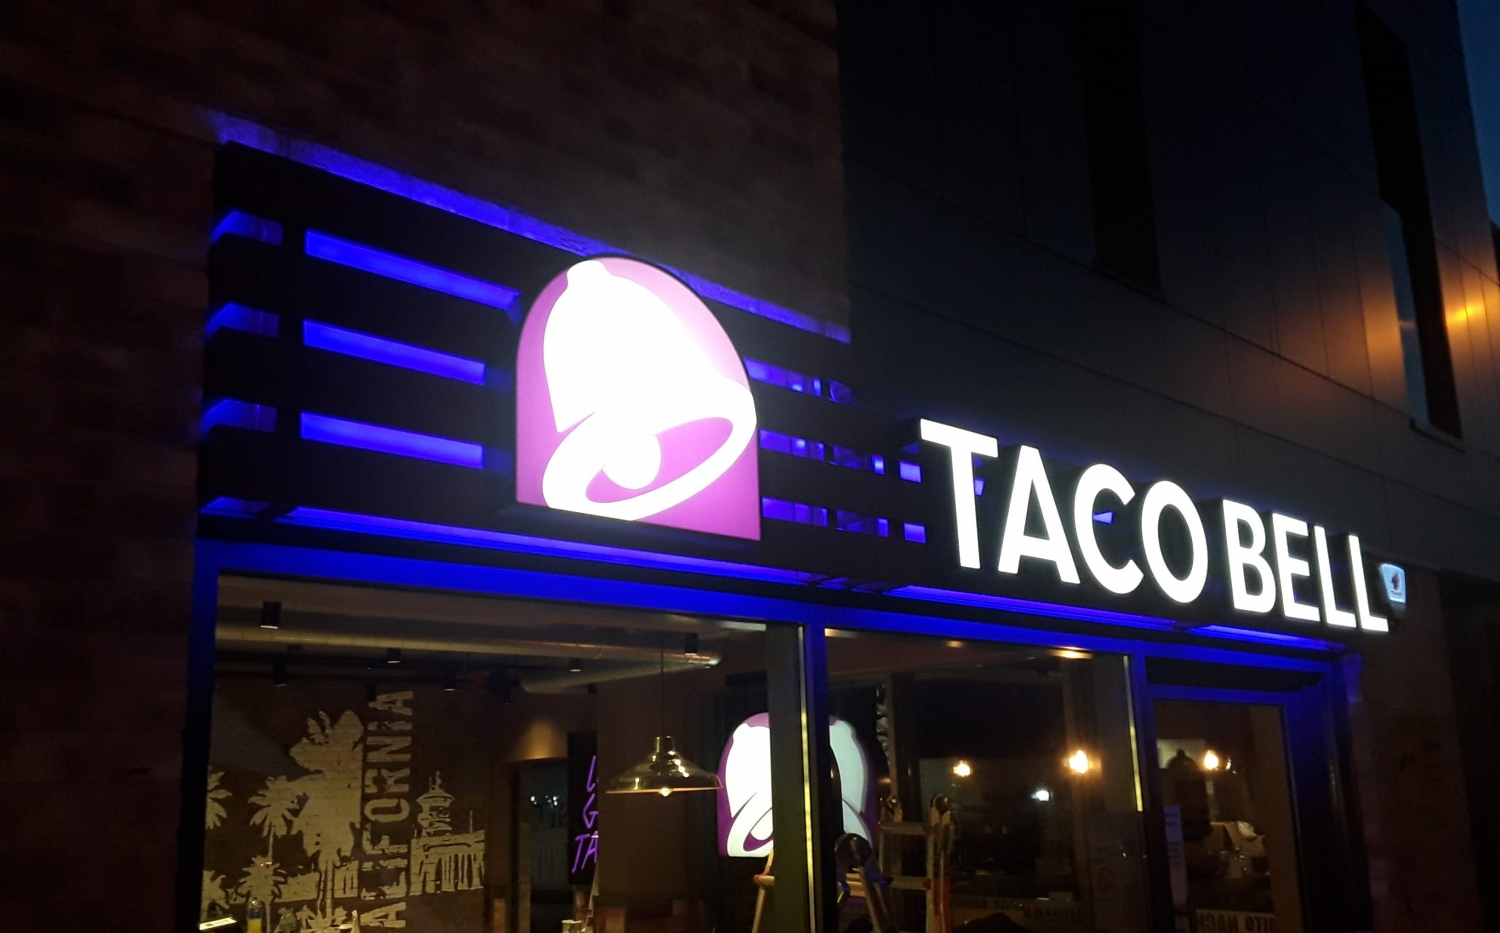 Taco Bell - nationwide